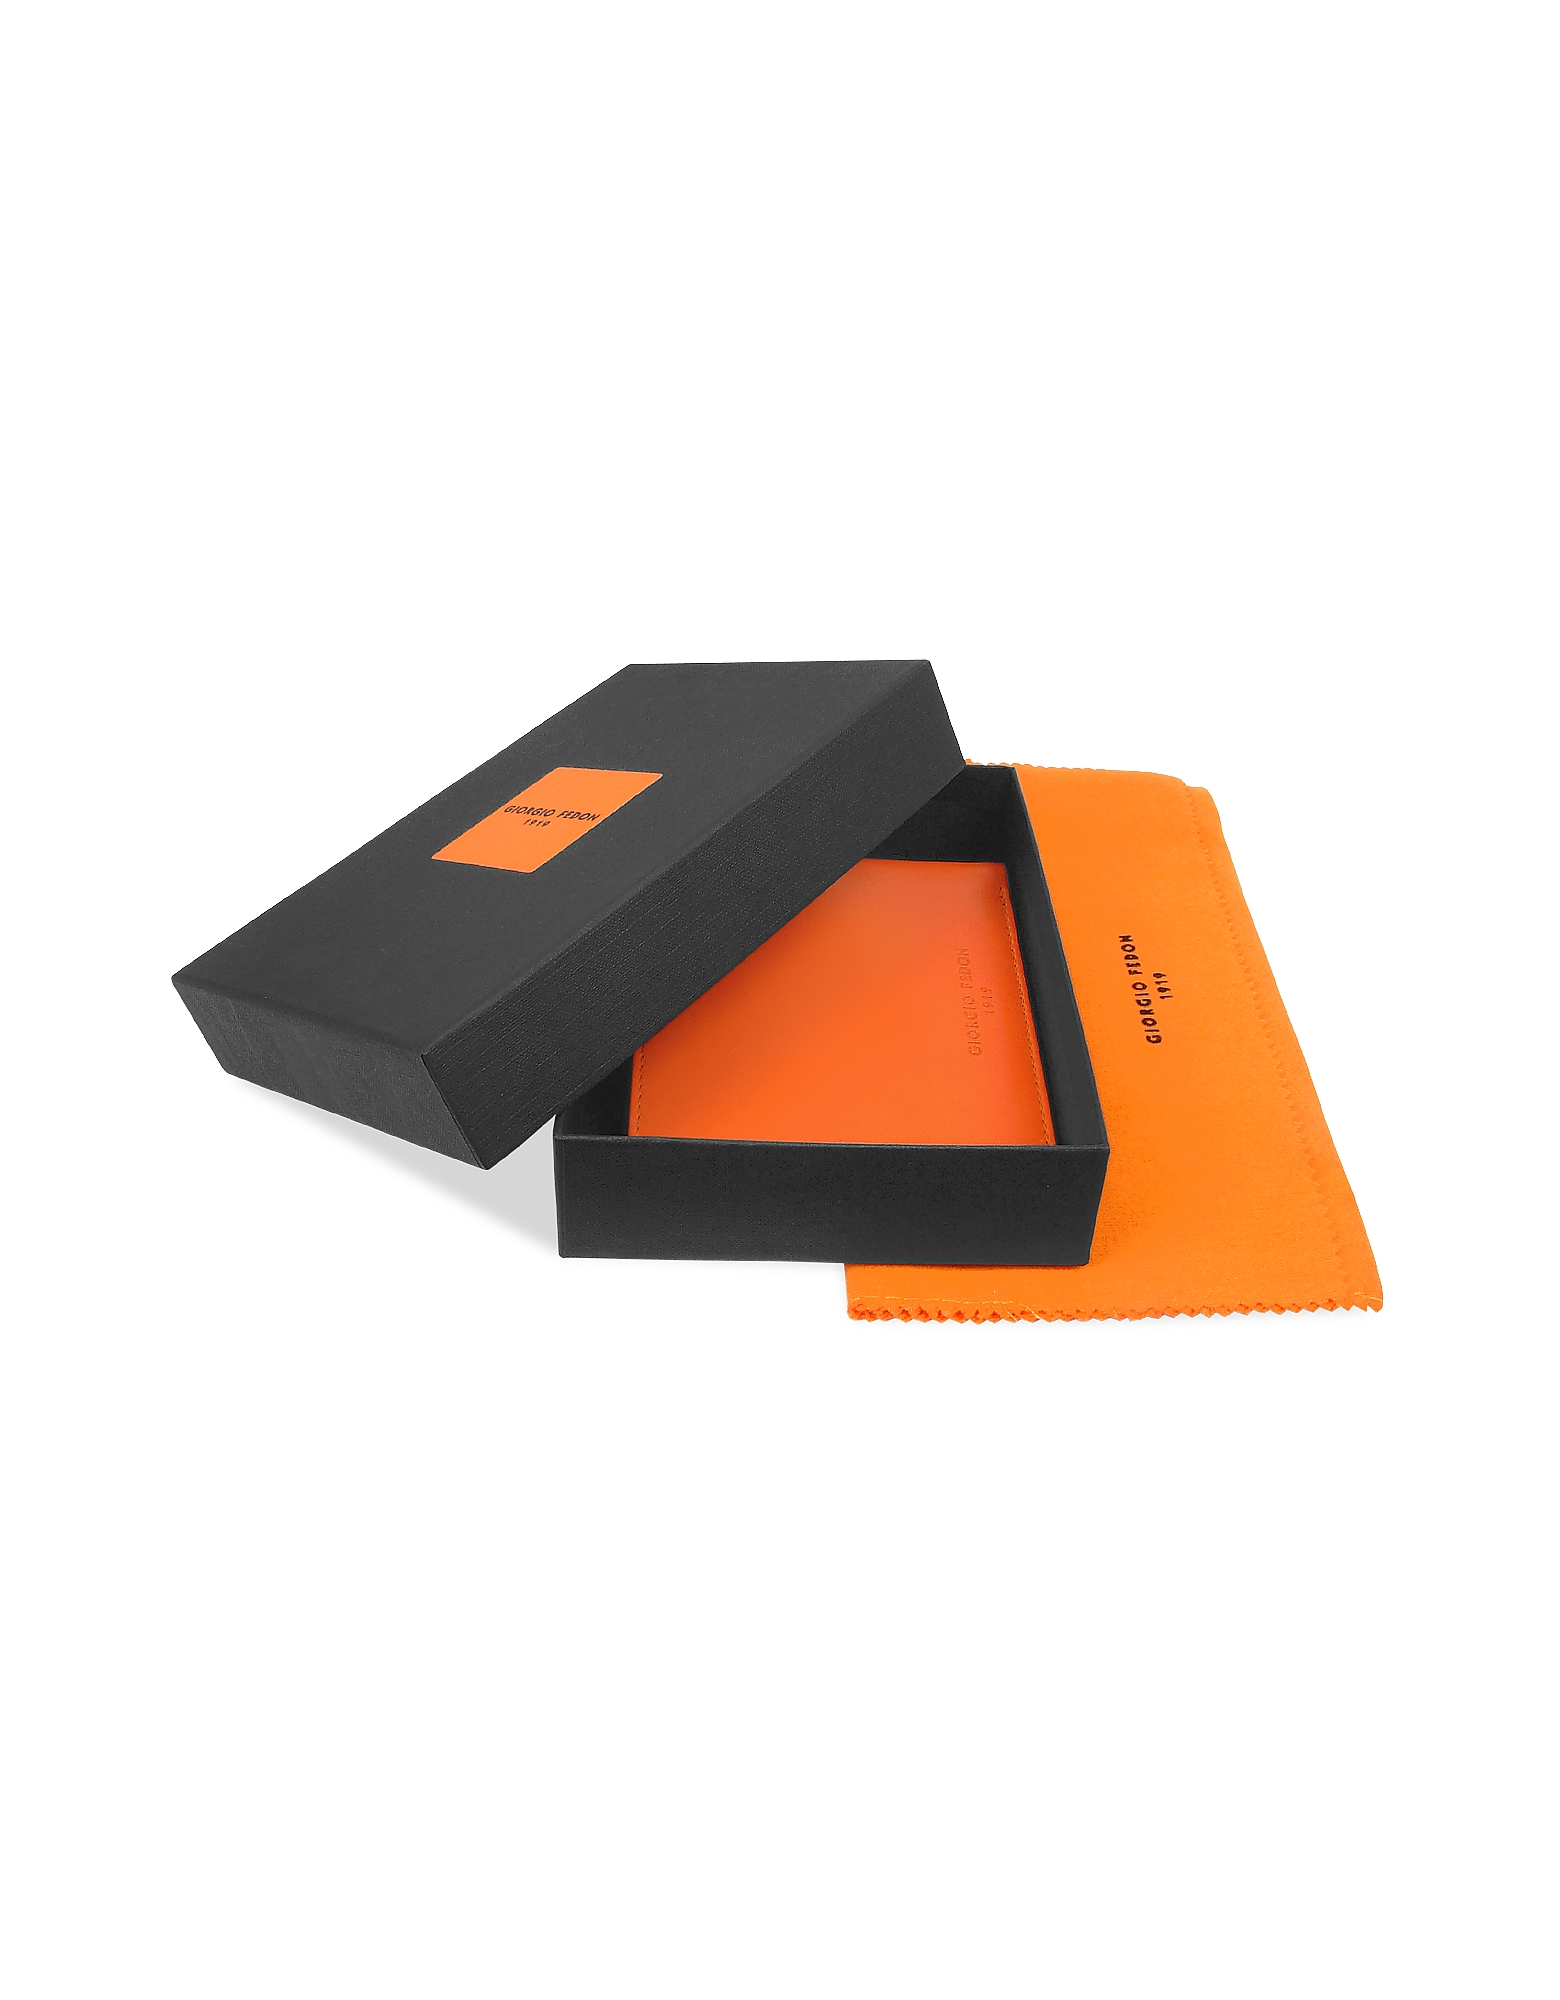 Classica - Men's Orange Calfskin Card Holder Wallet от Forzieri.com INT